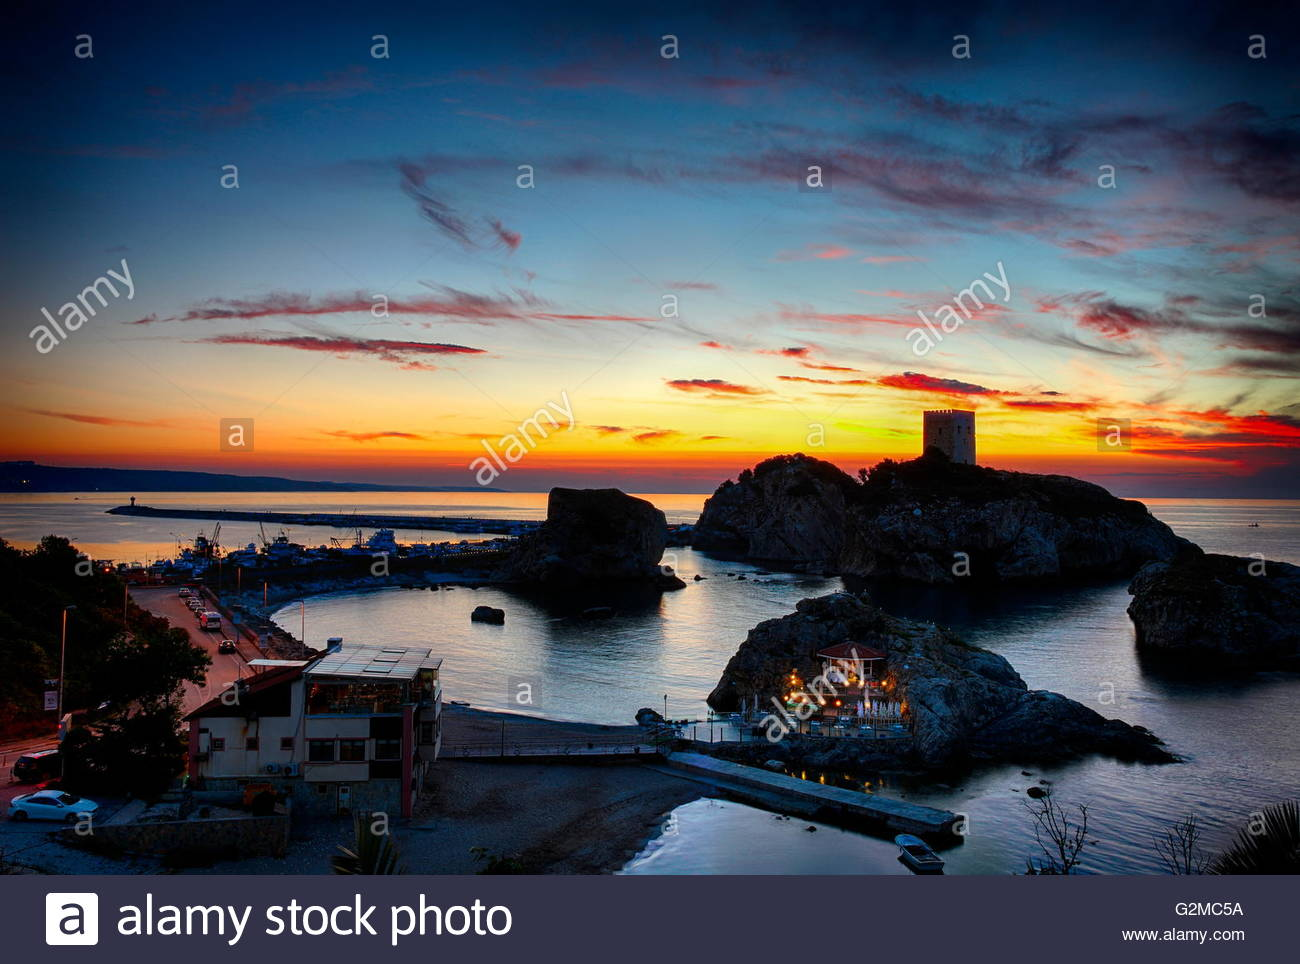 Istanbul's Black Sea shore to the historic castle town in sile and sunset - Stock Image